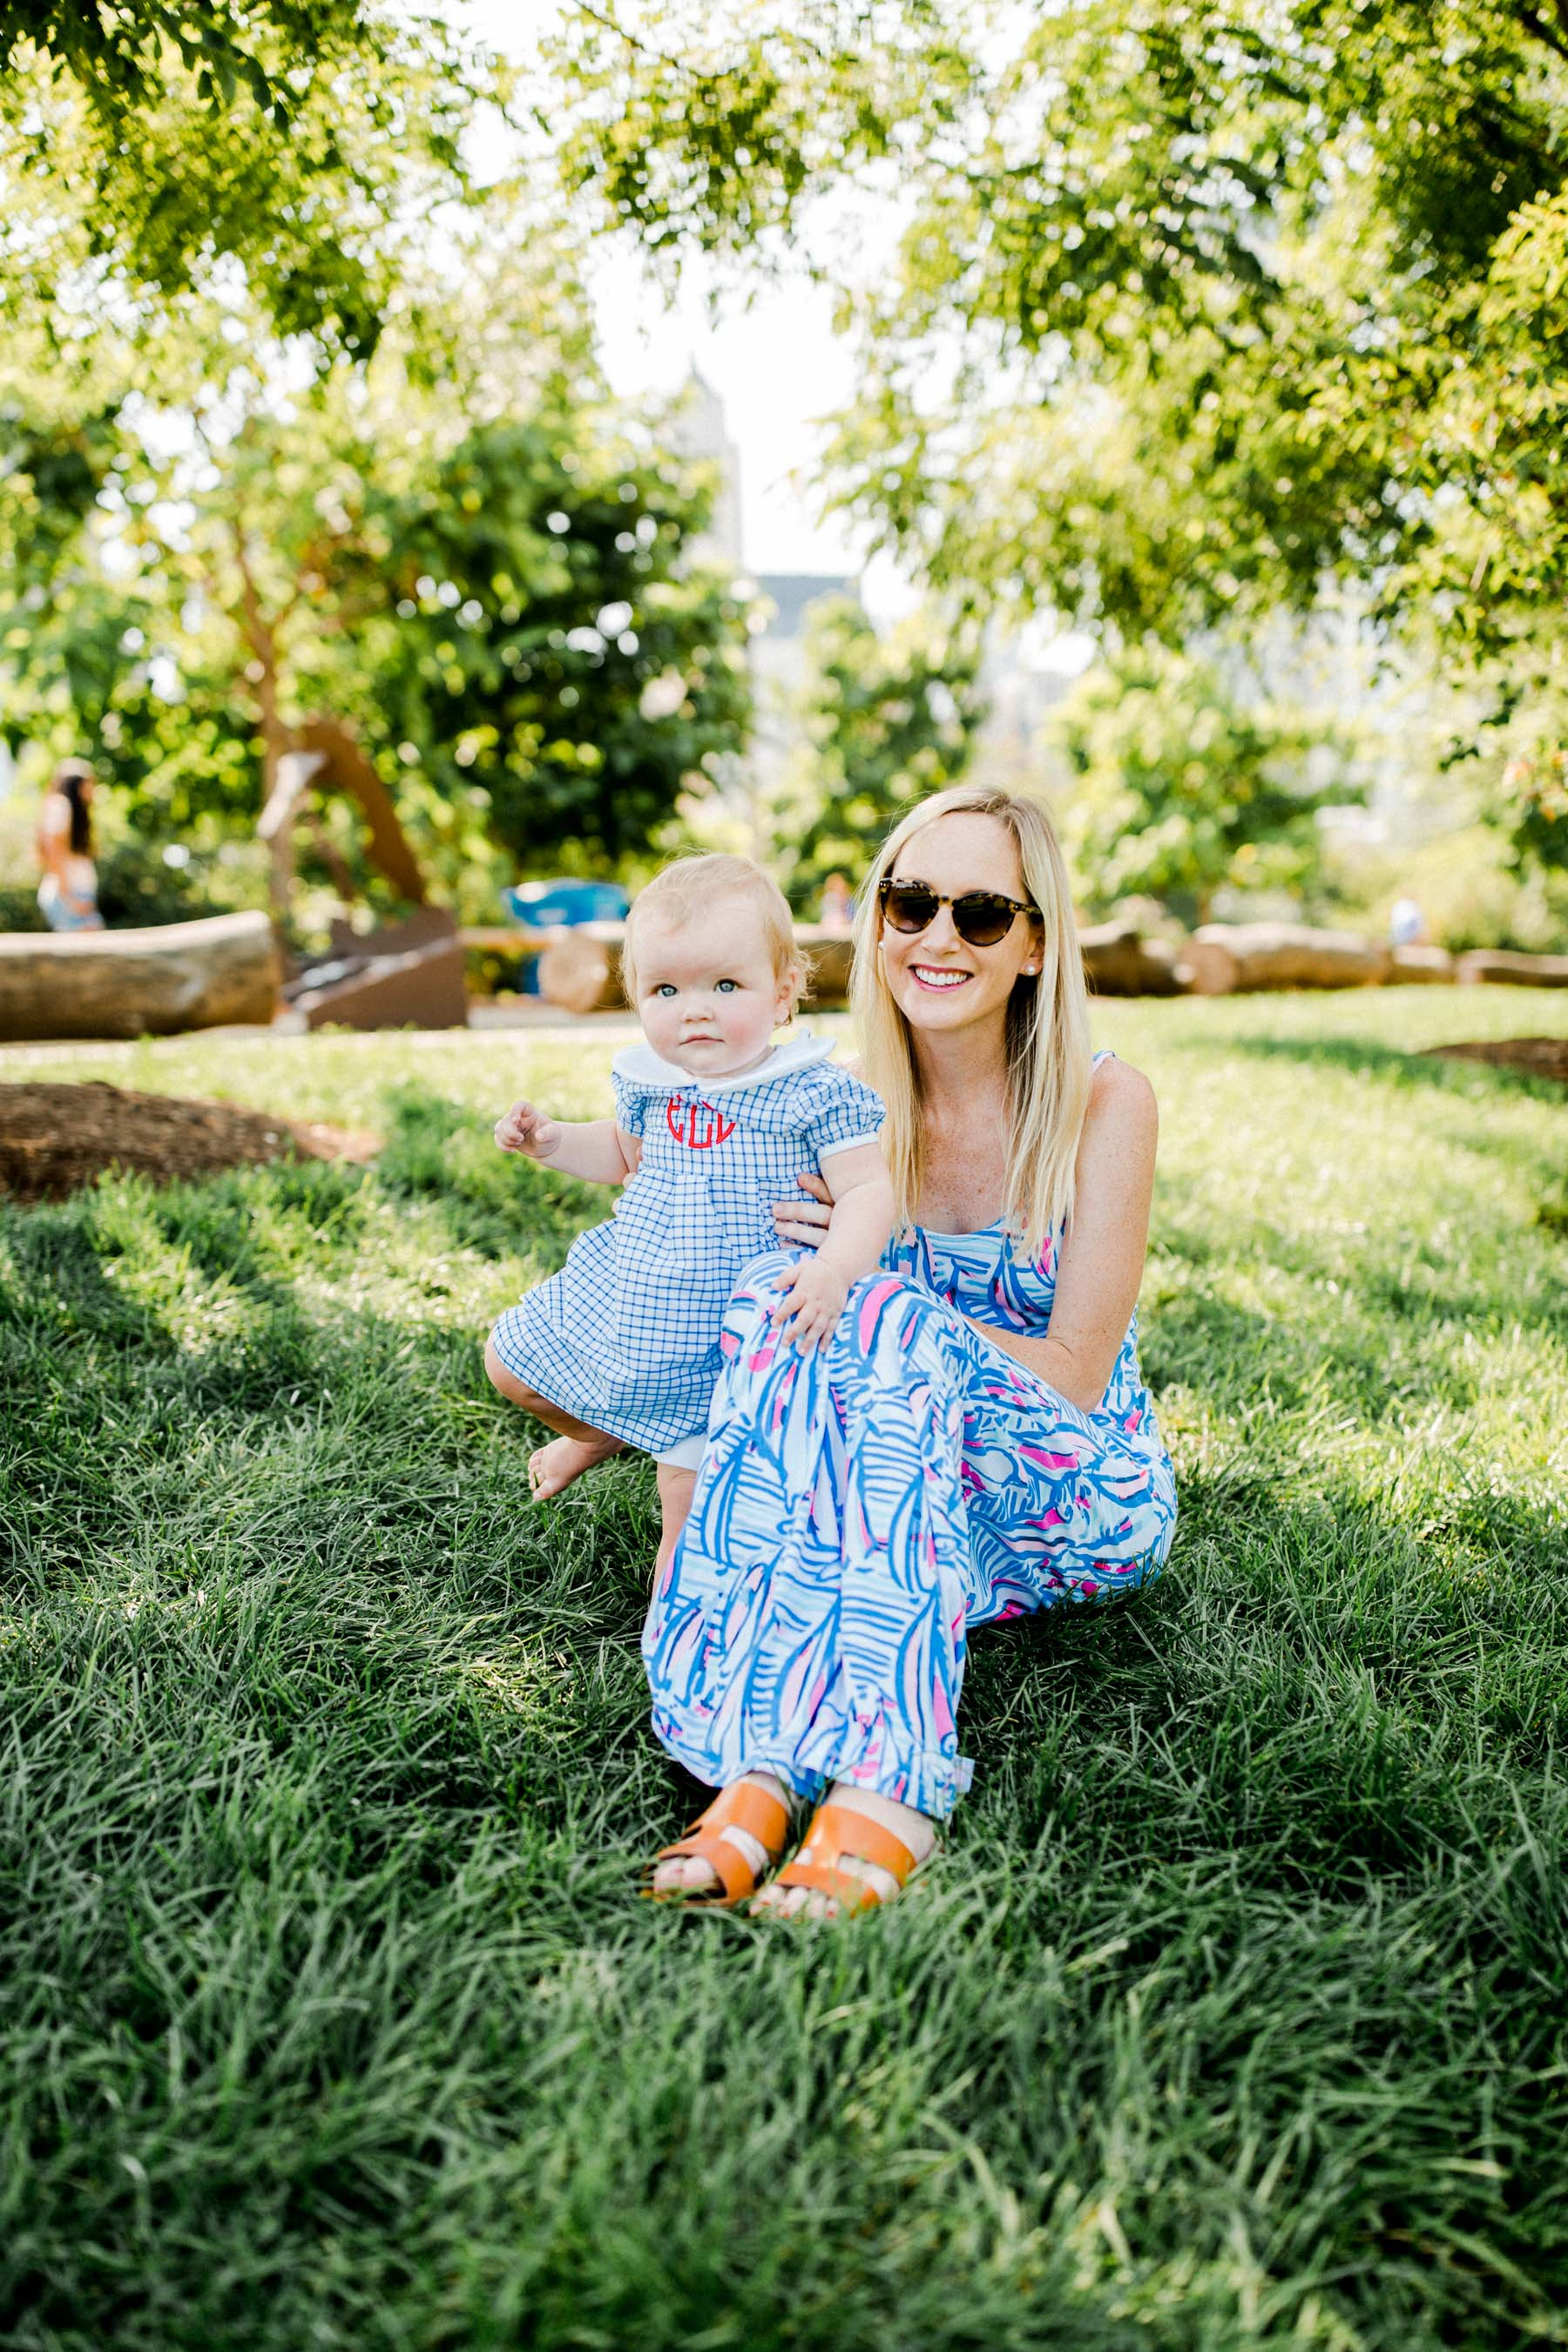 Kelly and Emma Larking Maggie Daley Park (+ a Giveaway!)